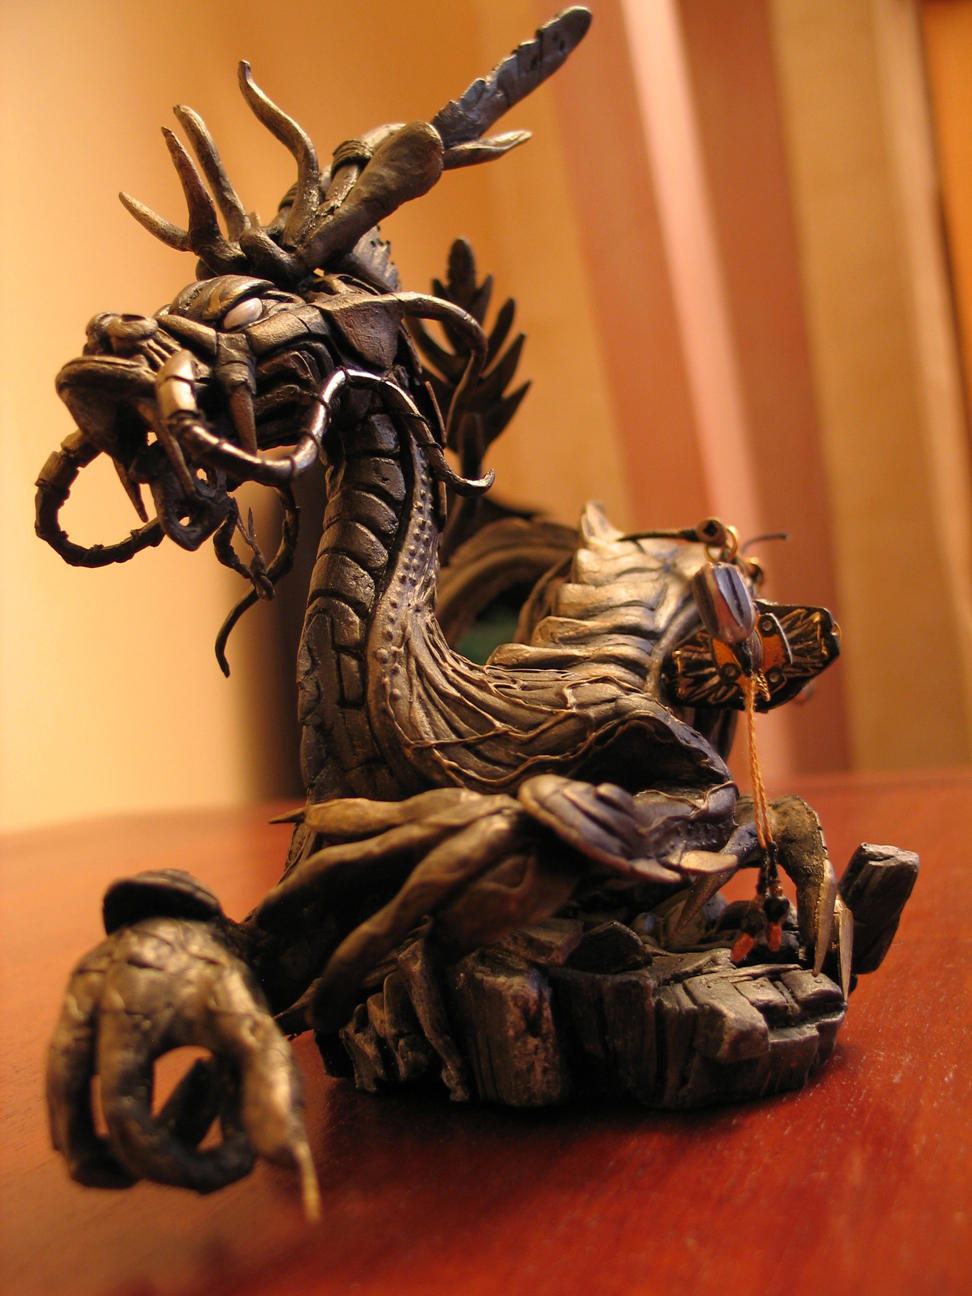 wicked dragon by roder